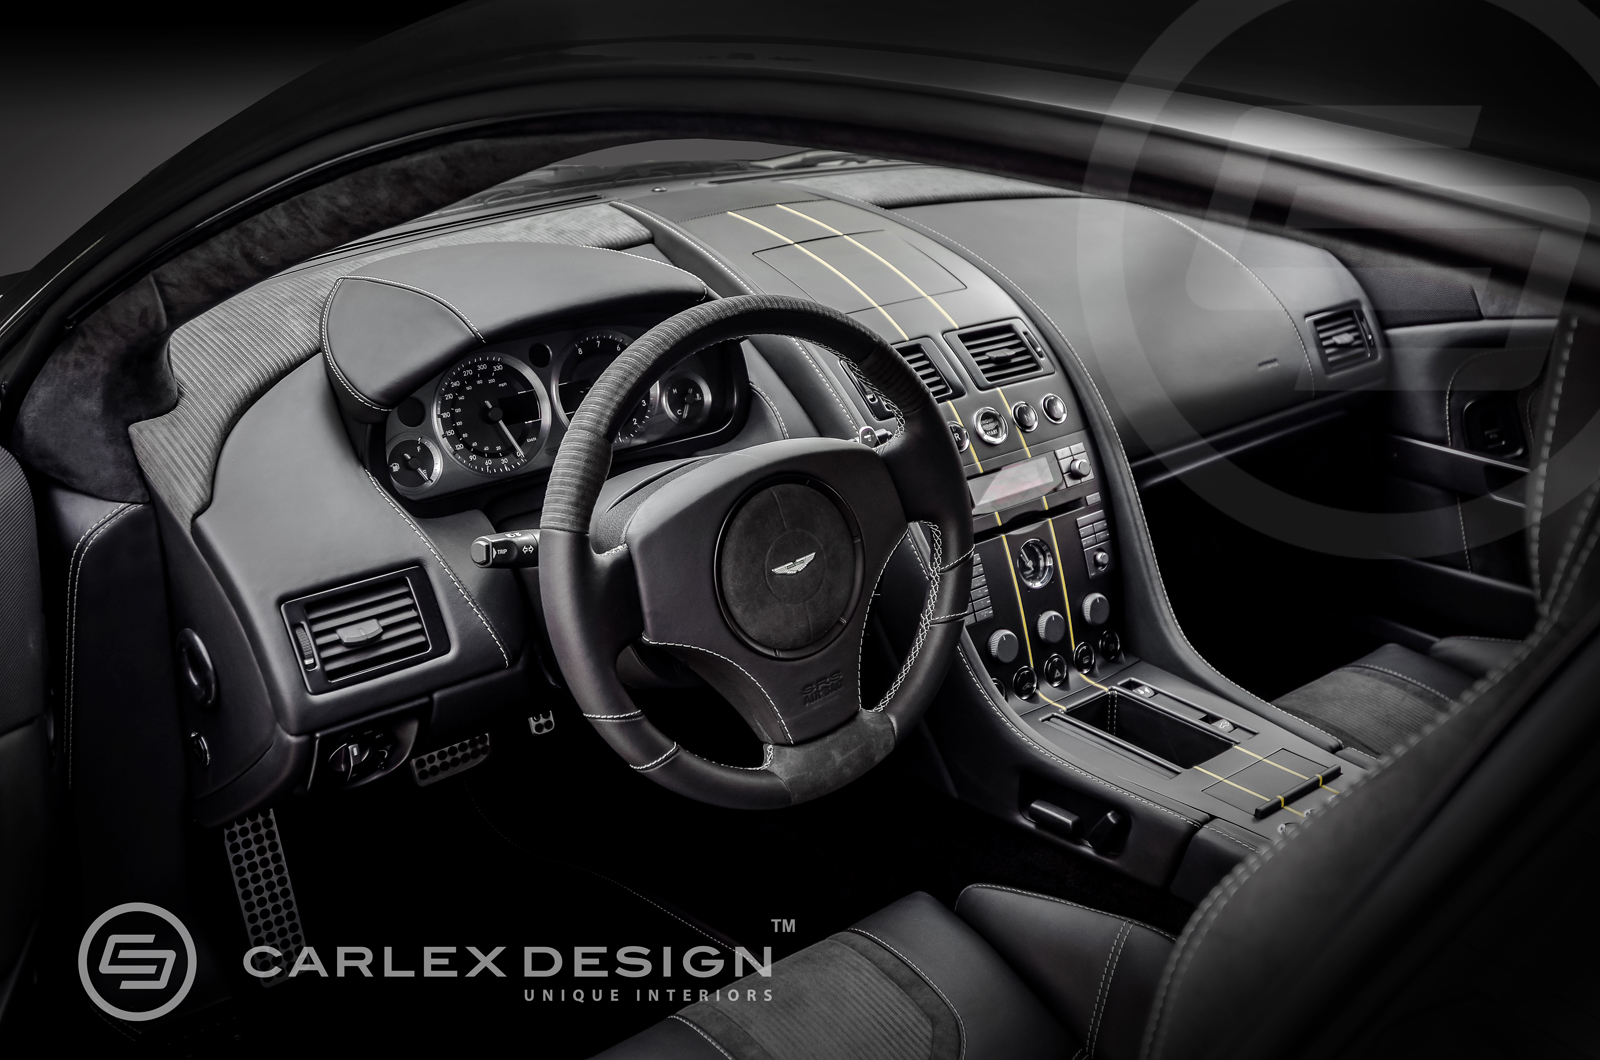 Aston Martin Db9 Custom Interior Is Worthy Of James Bond HD Wallpapers Download free images and photos [musssic.tk]